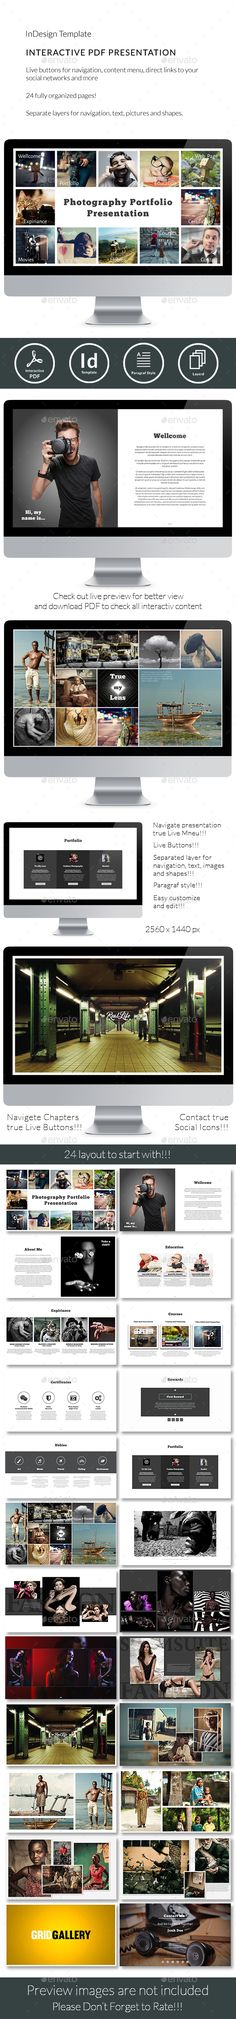 Interactive Pdf Photographer Portfolio No7 Epublishing Design Template Indesign Indd Here Http